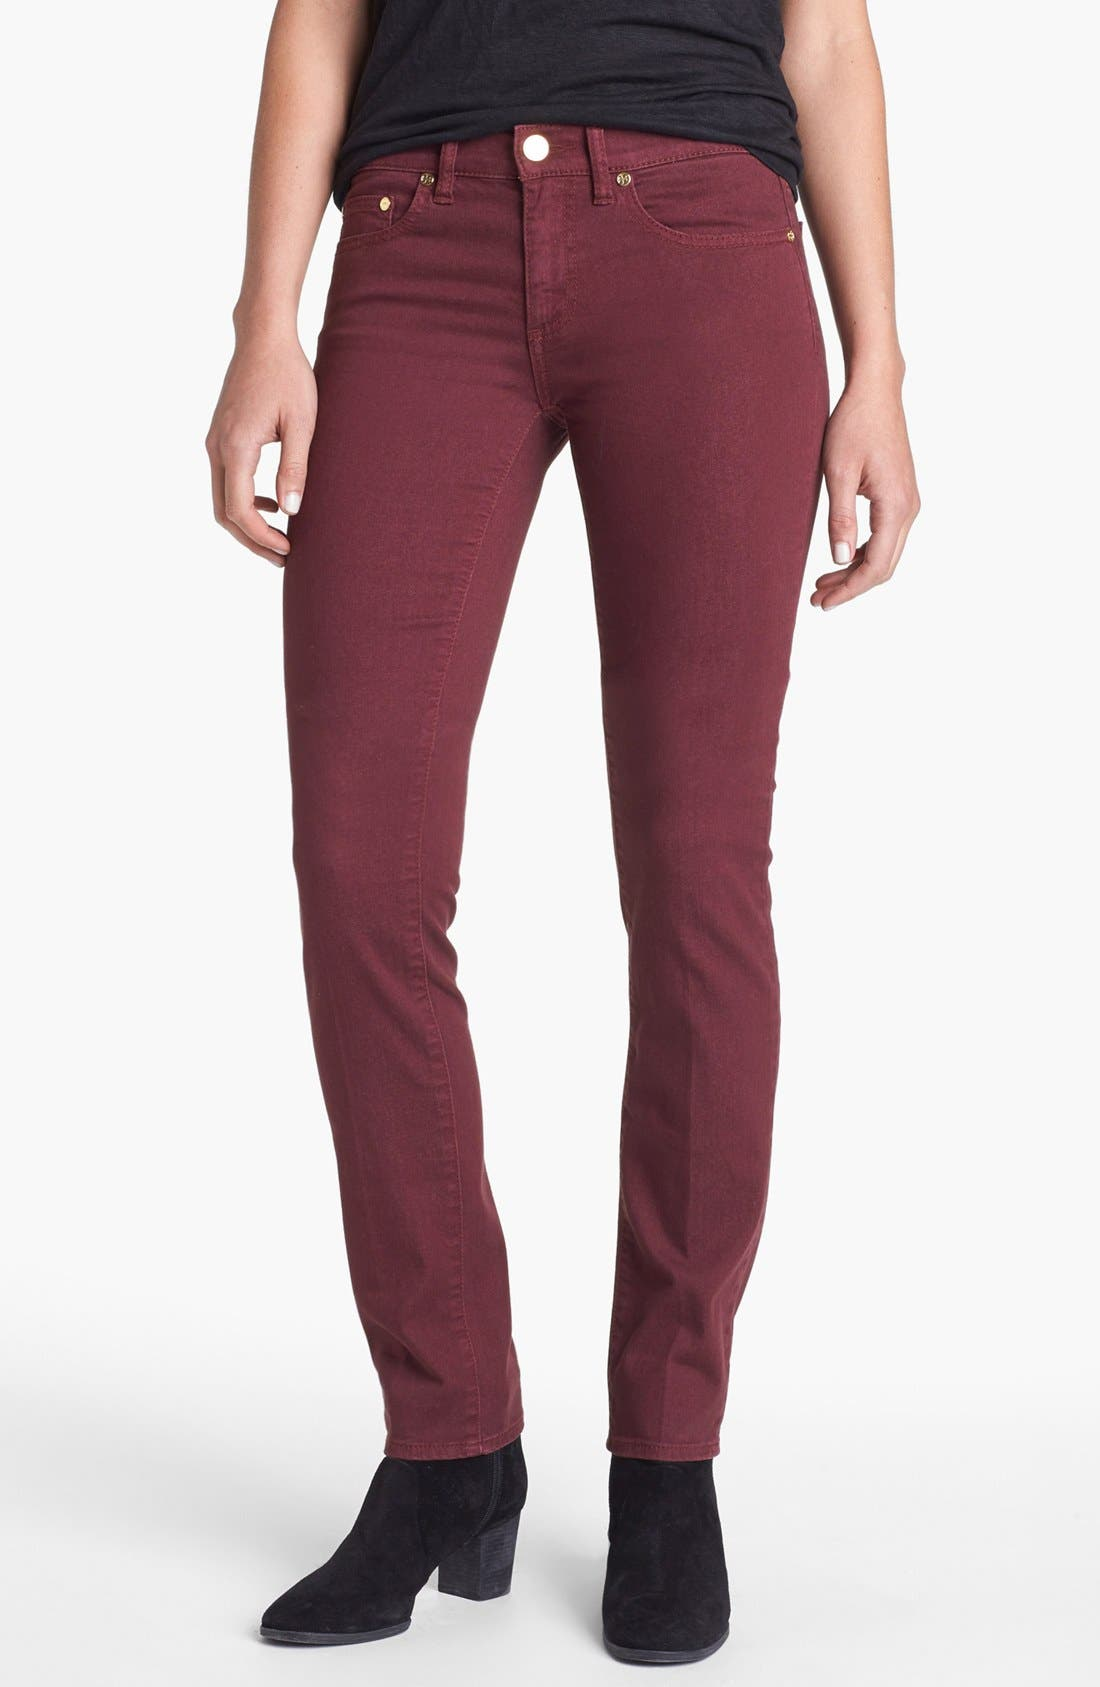 Main Image - Tory Burch 'Ivy' Colored Super Skinny Jeans (Dark Plum)